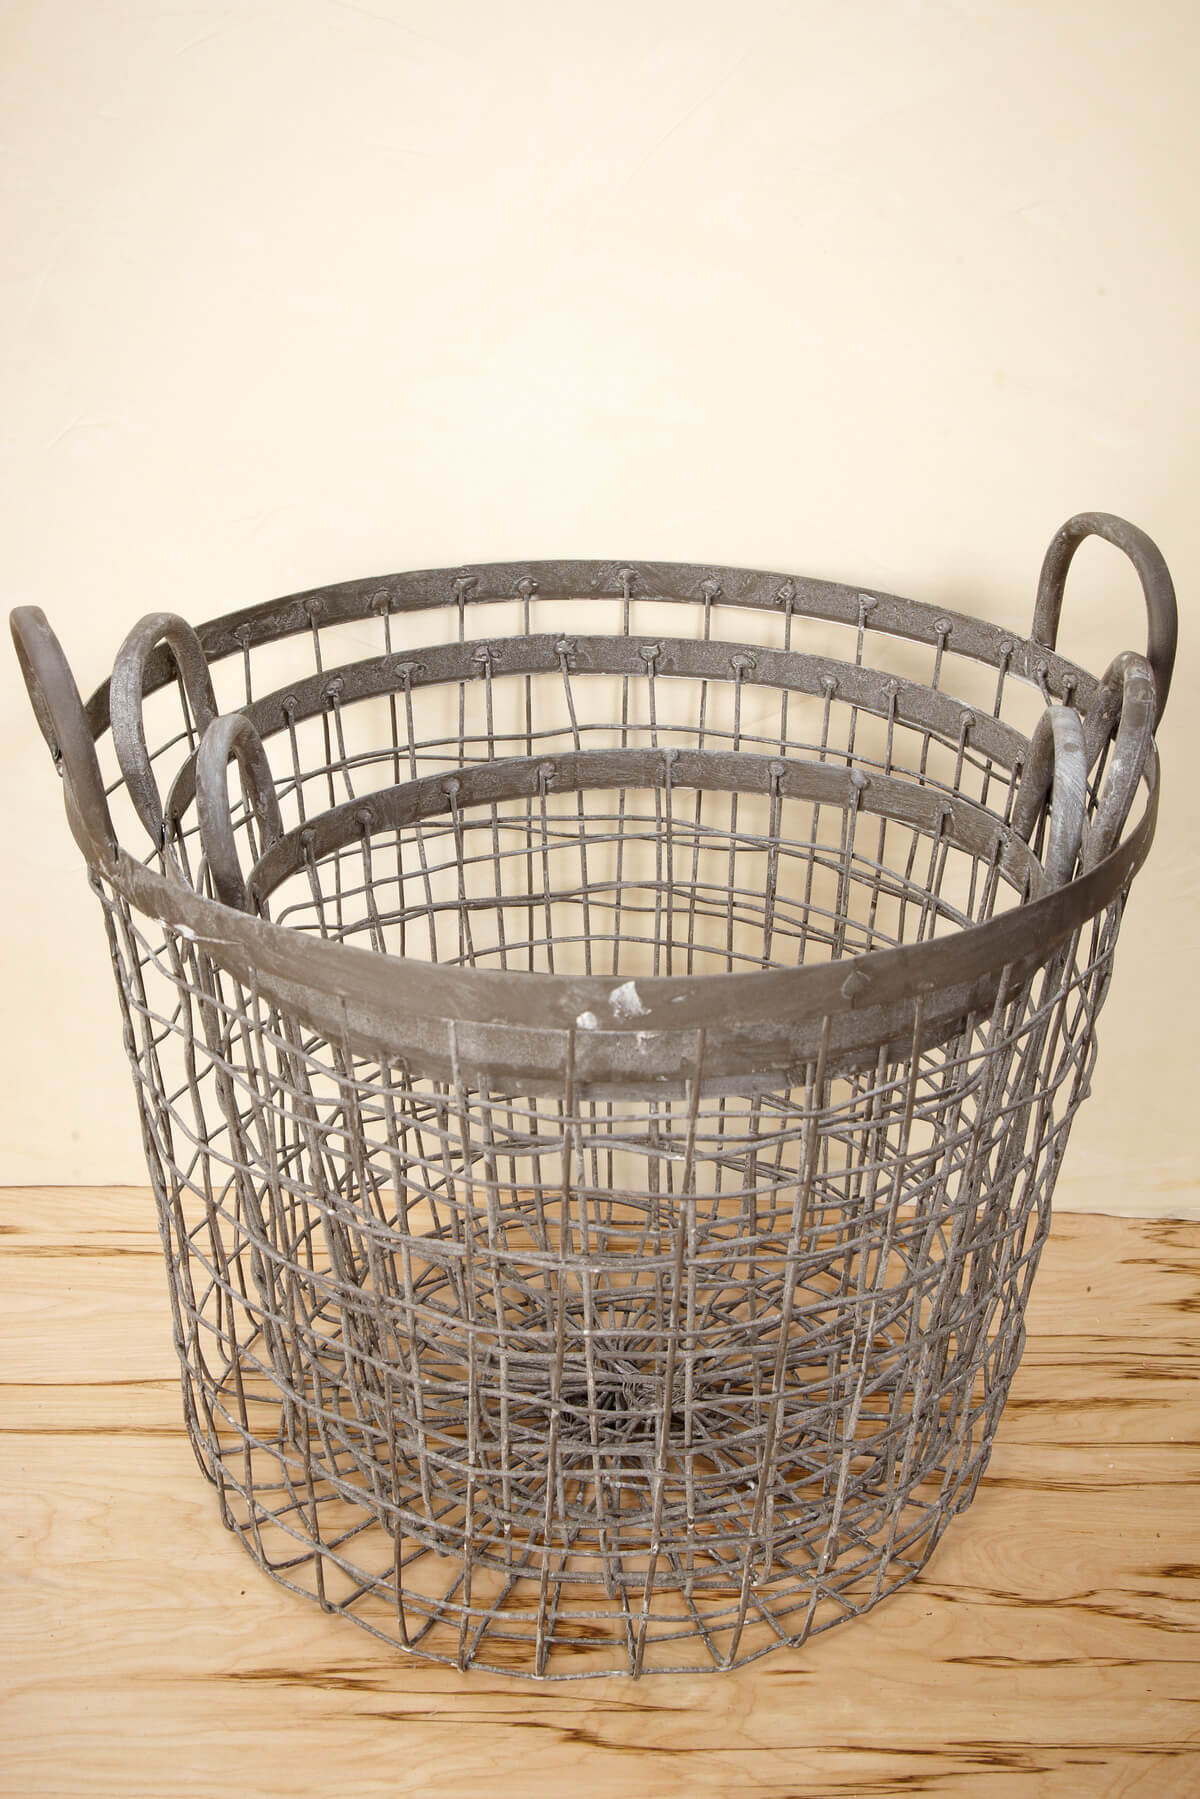 set of three industrial wire baskets 9 5 11 12 5. Black Bedroom Furniture Sets. Home Design Ideas